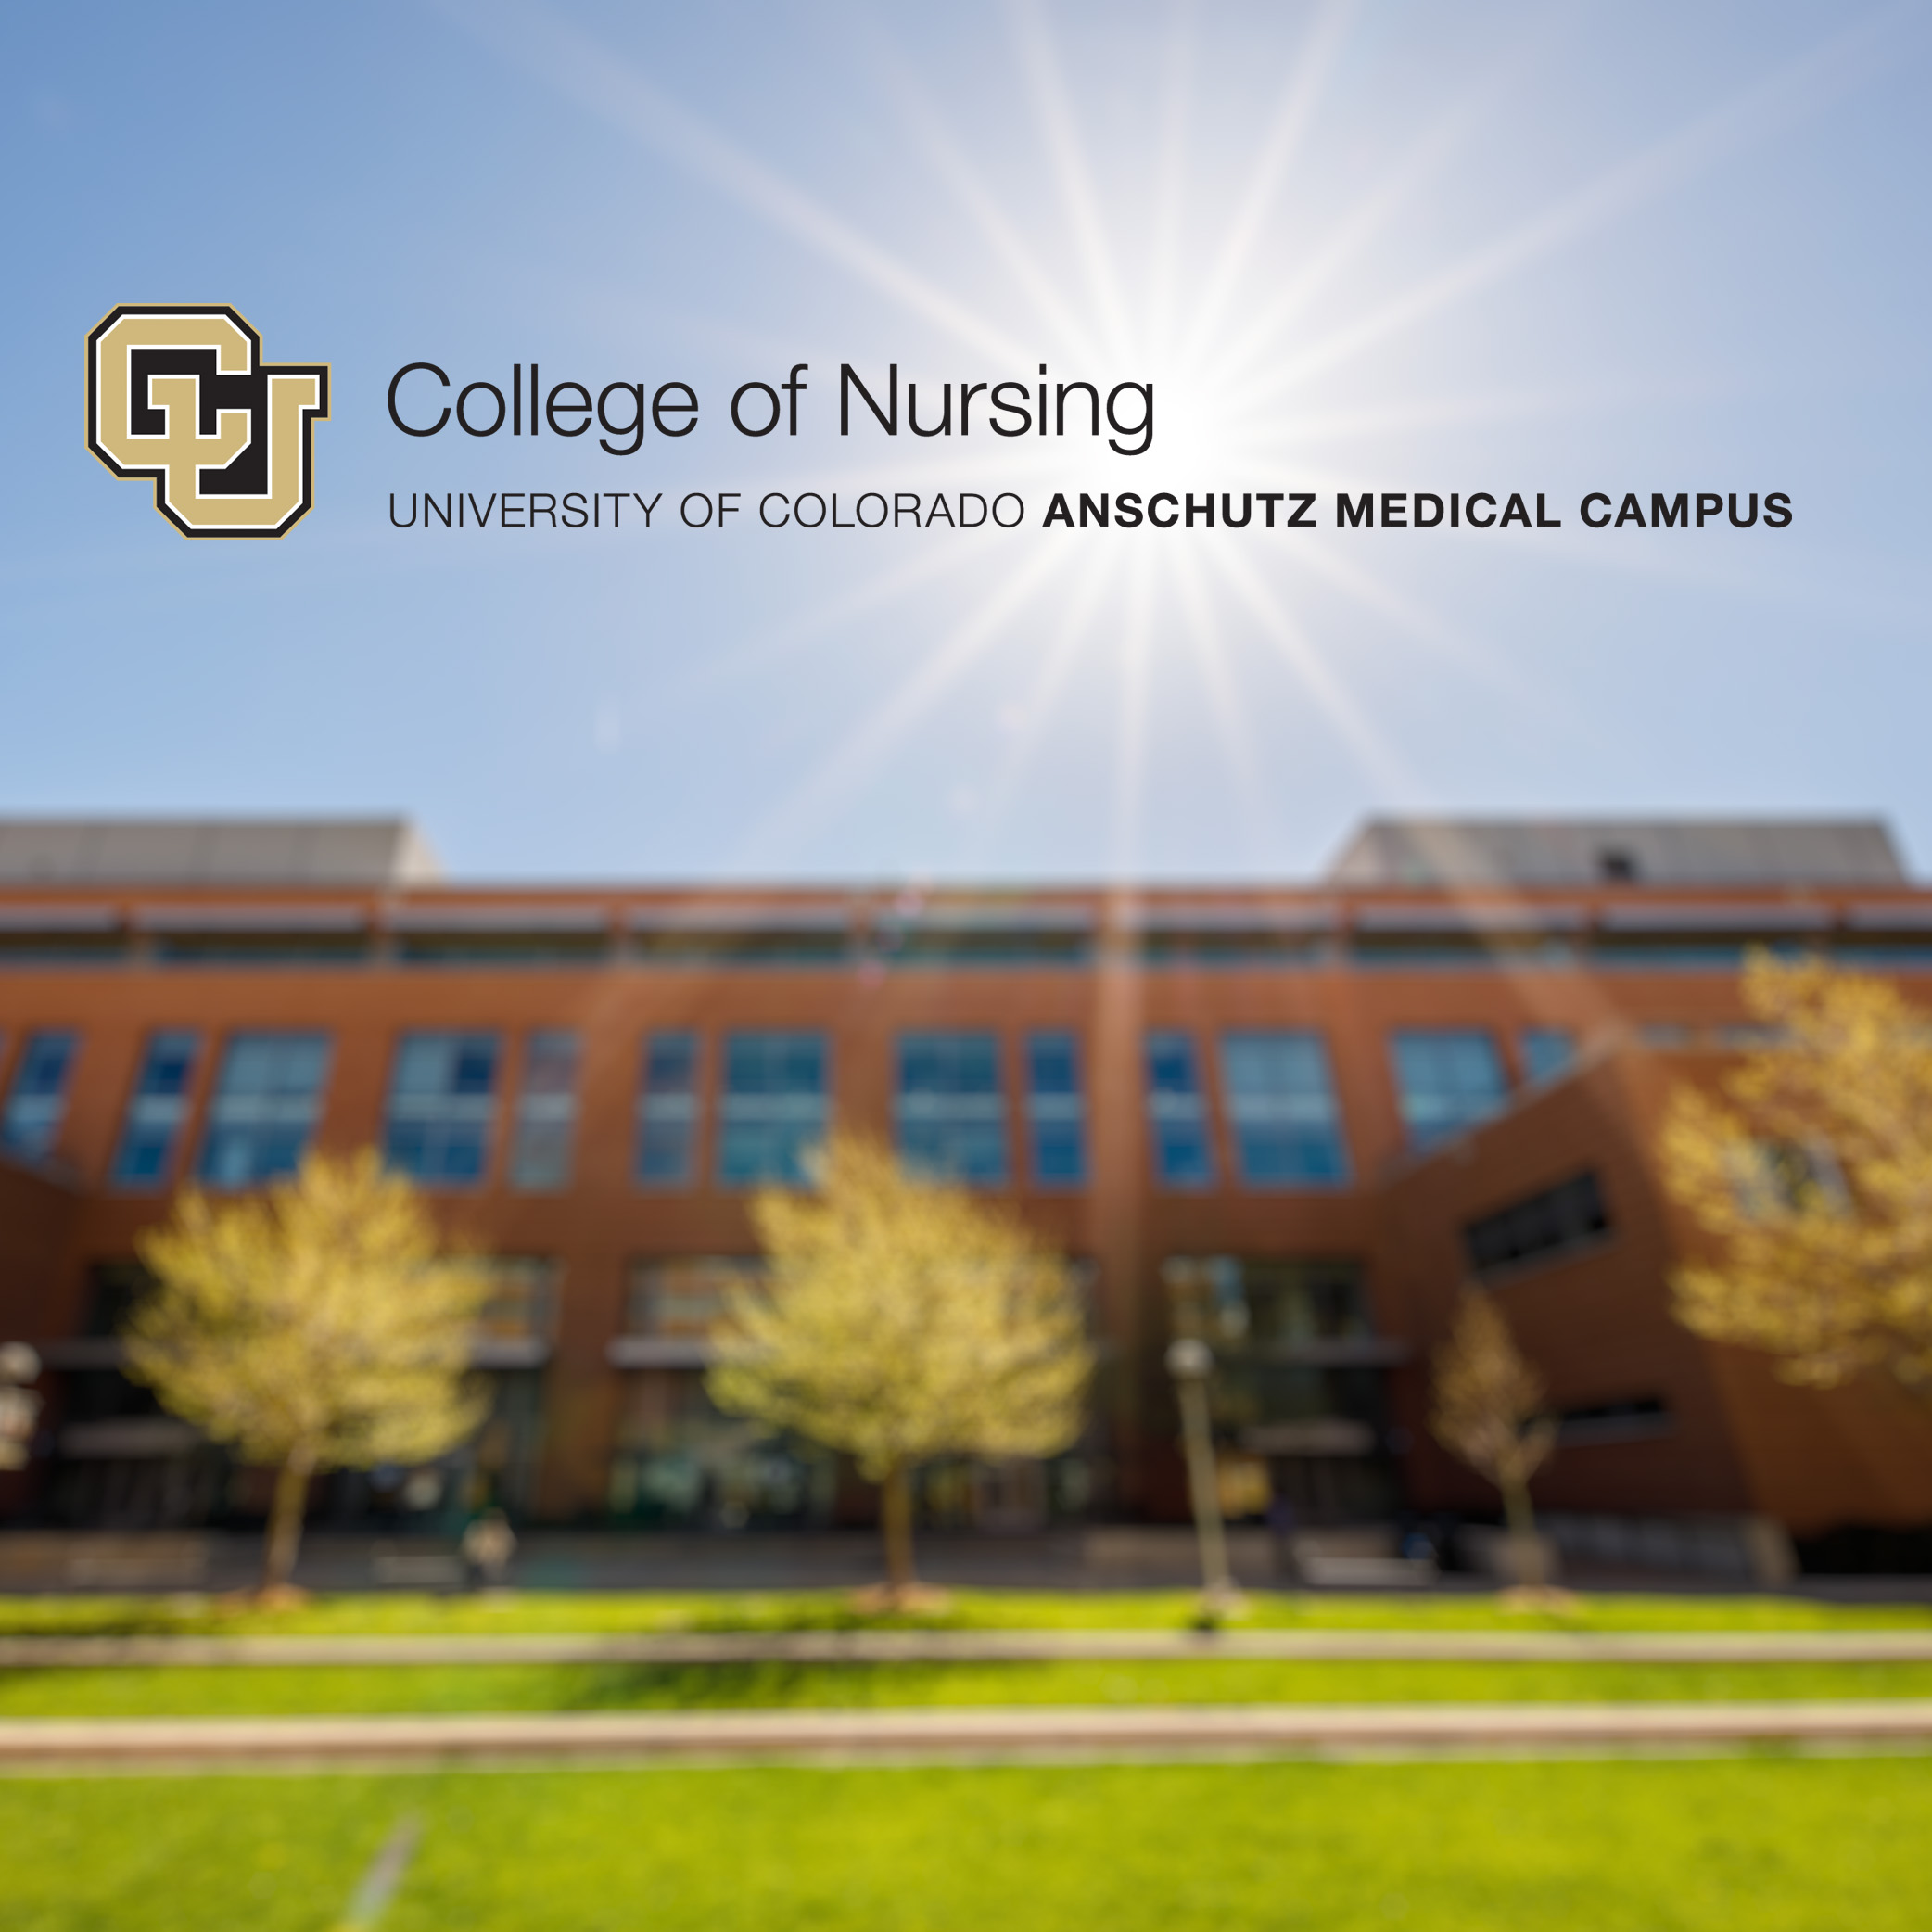 College of Nursing Marketing